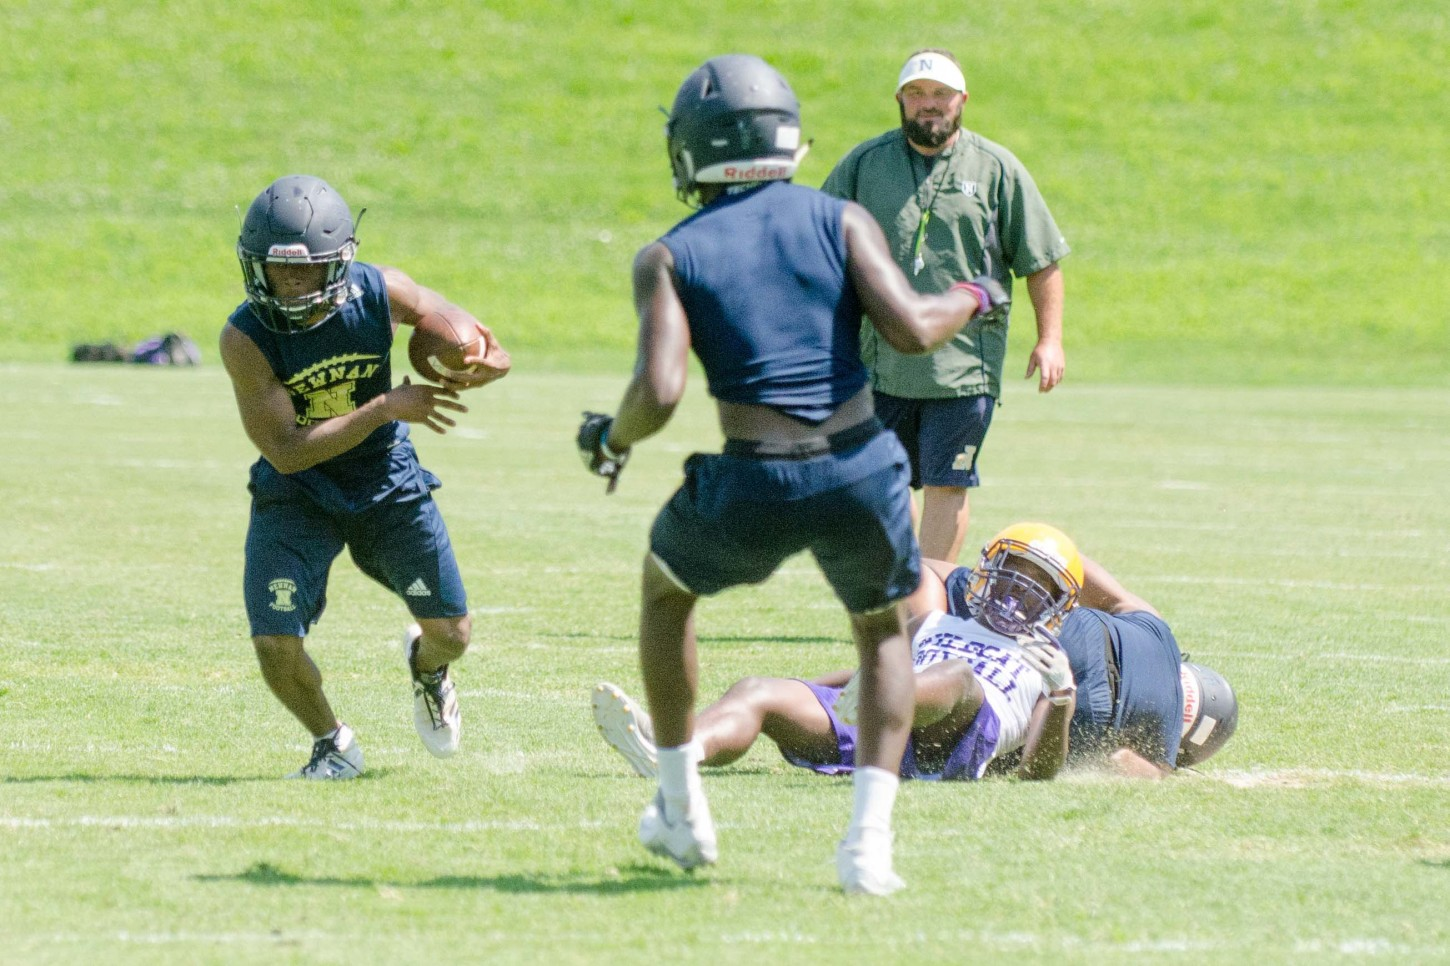 Newnan and Villa Rica met Tuesday for an hour's worth of 7-on-7 drills.